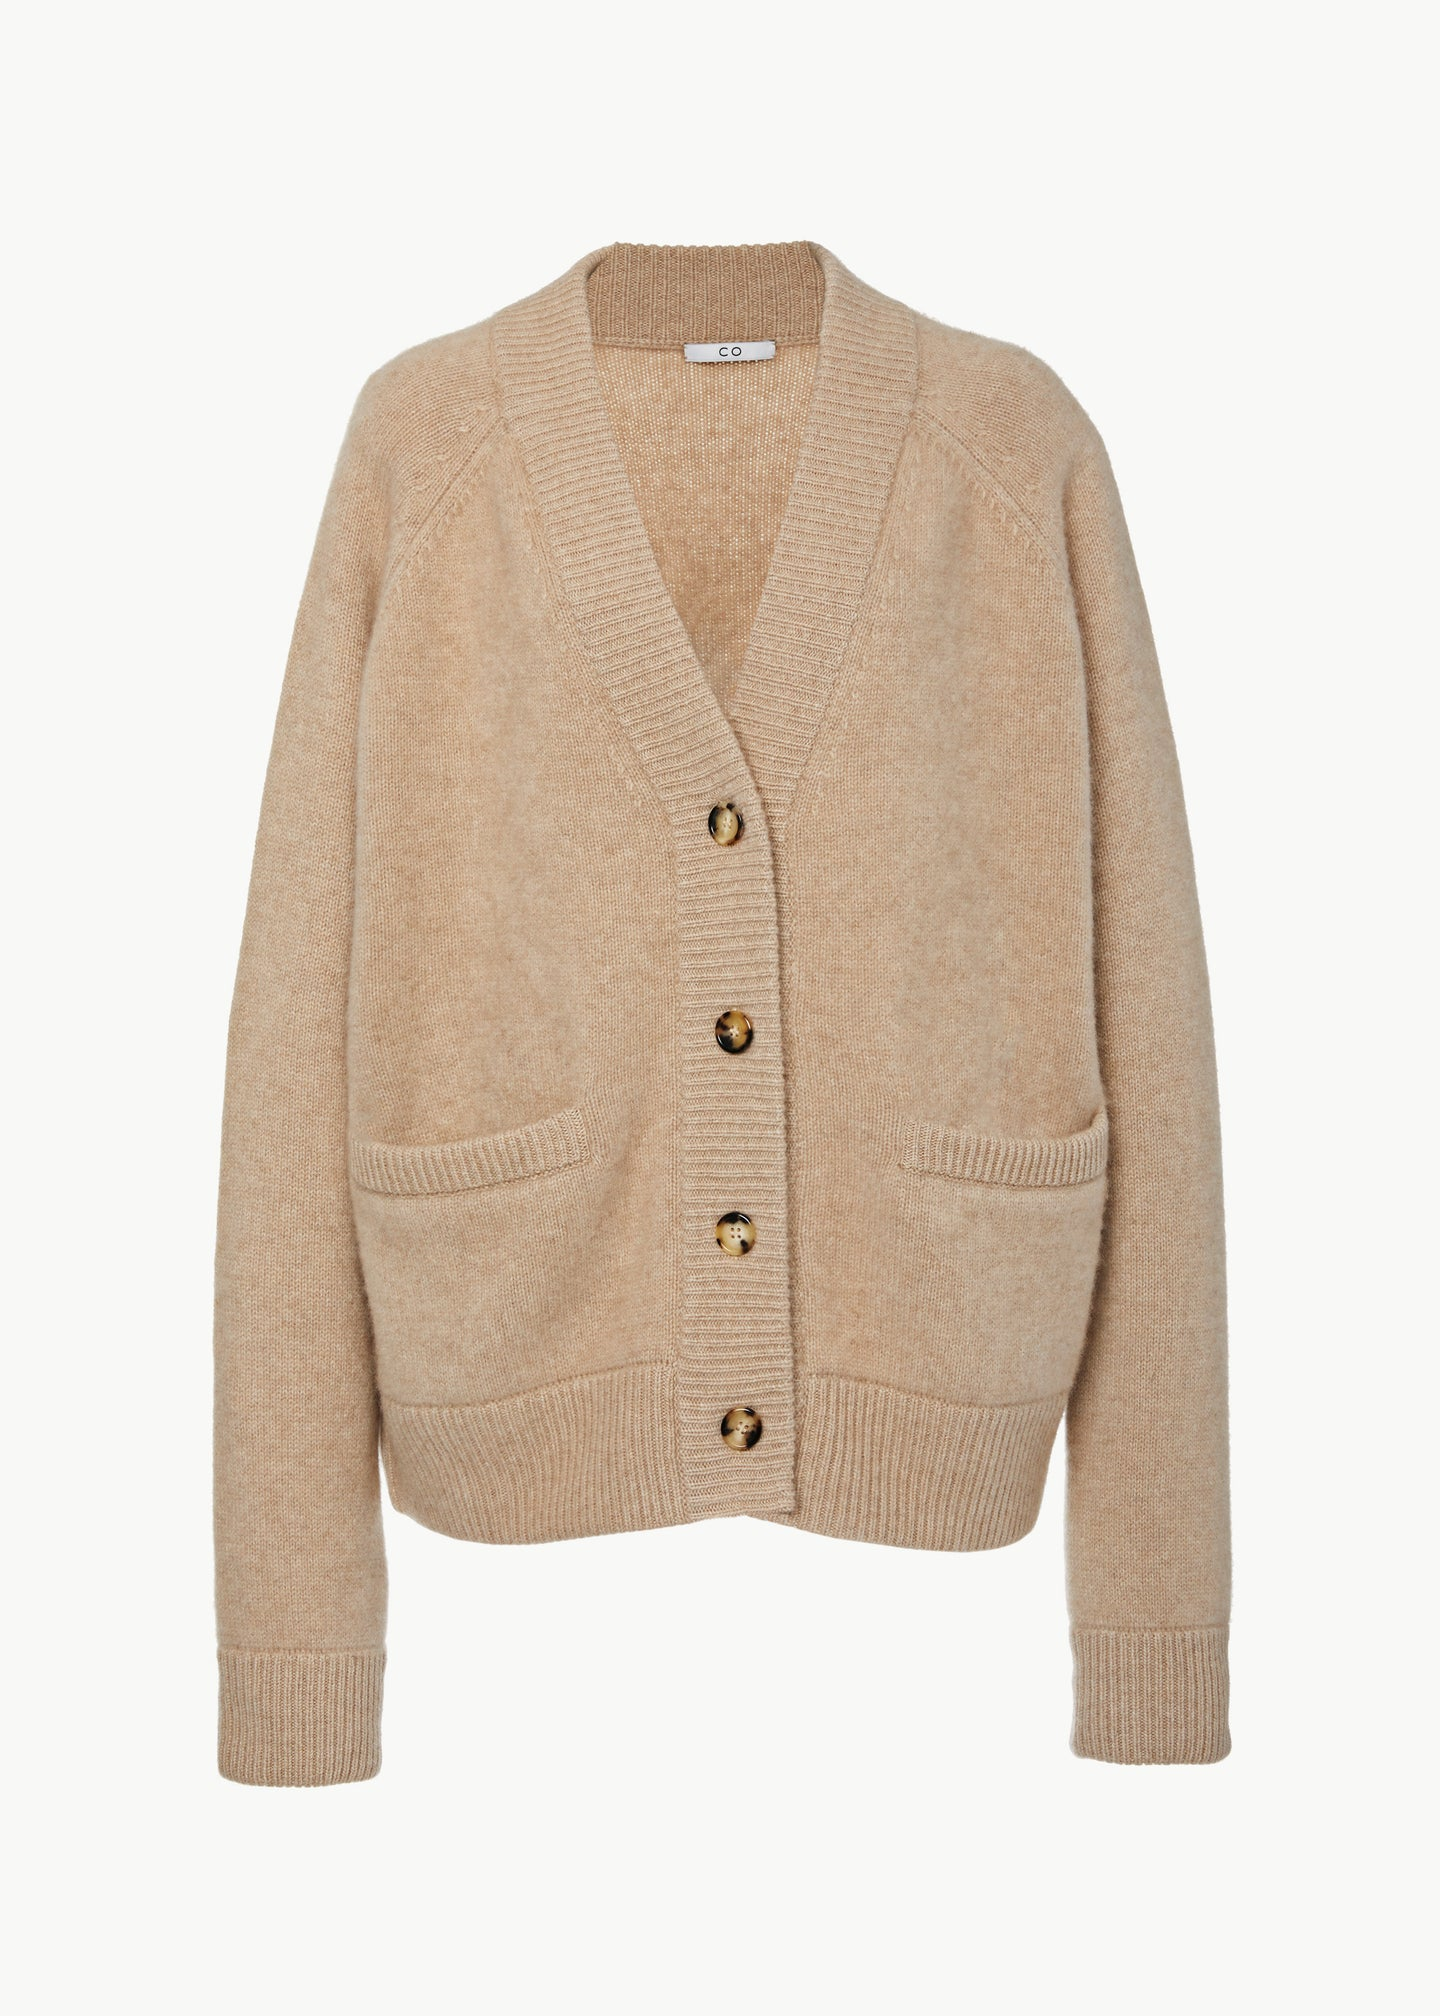 Oversized Cardigan in Cashmere - CO